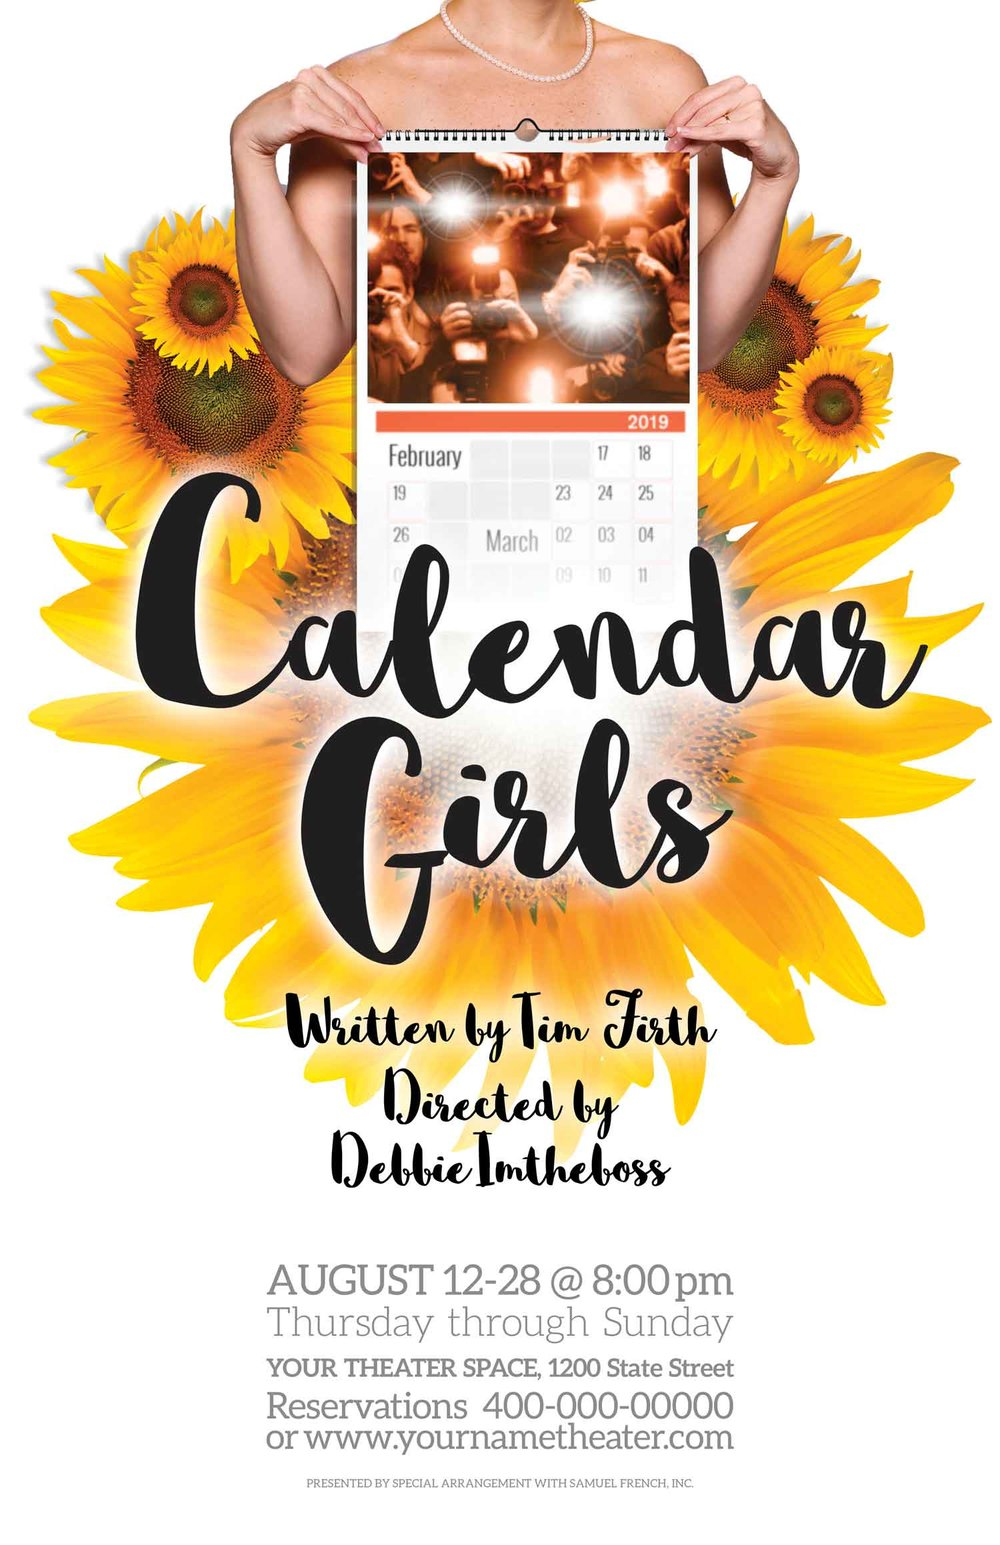 Drama-Queen-Graphics-Calendar-Girls-posters_rd1_low.jpg